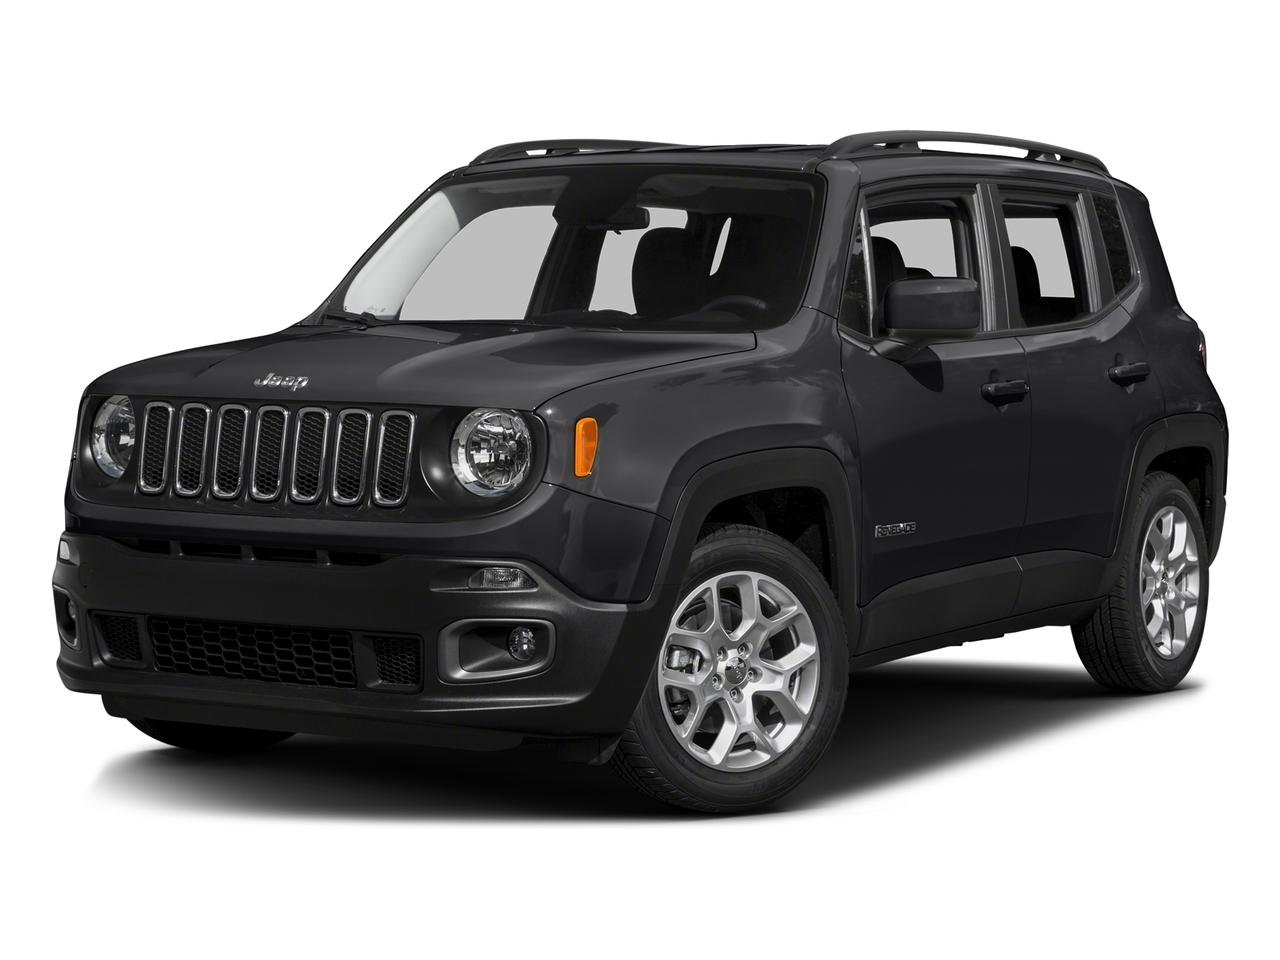 2016 Jeep Renegade Vehicle Photo in Concord, NC 28027